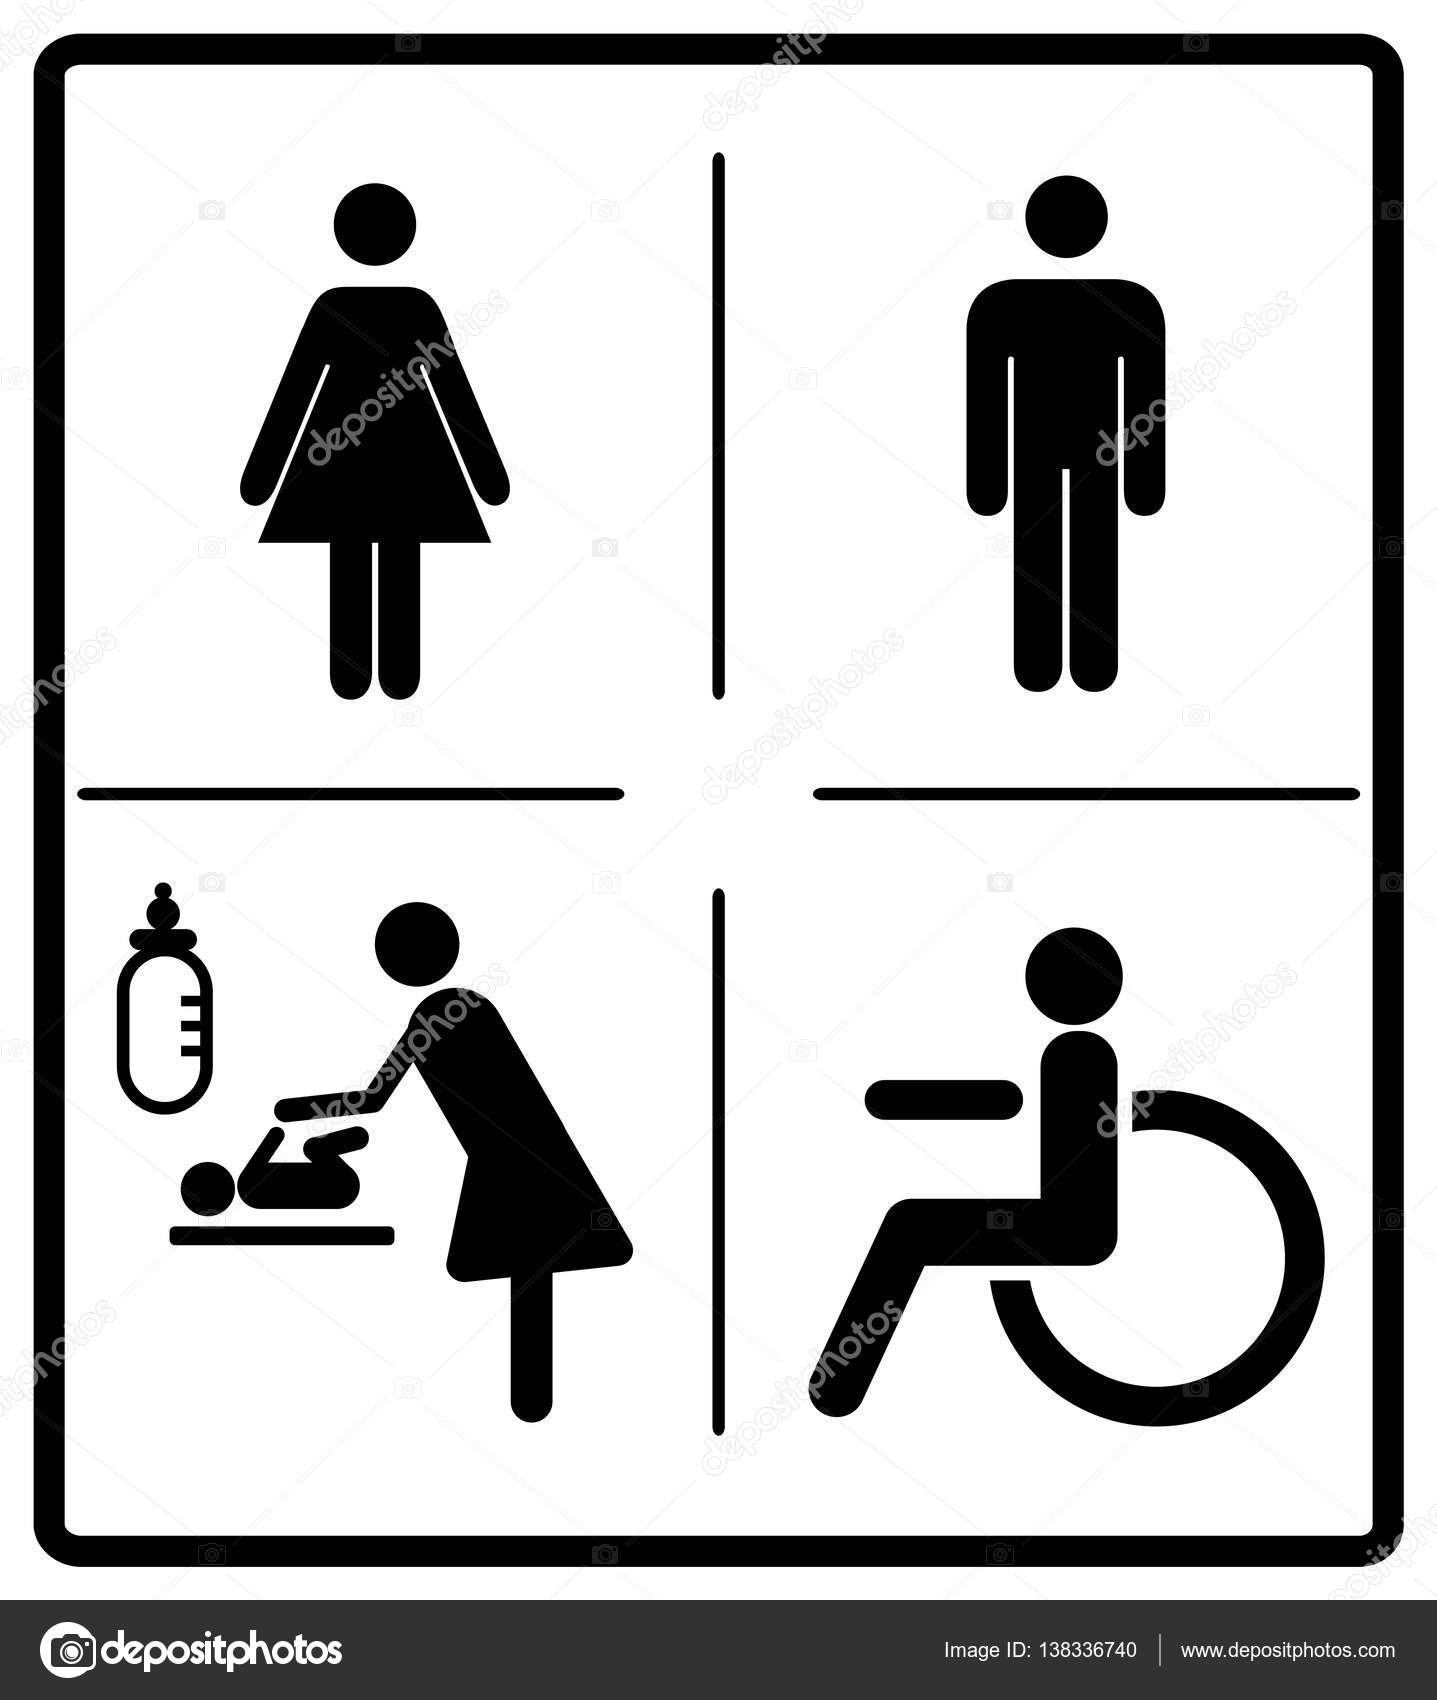 photo about Bathroom Signs Printable named Lavatory symptoms printable Vector mens and womens disabled